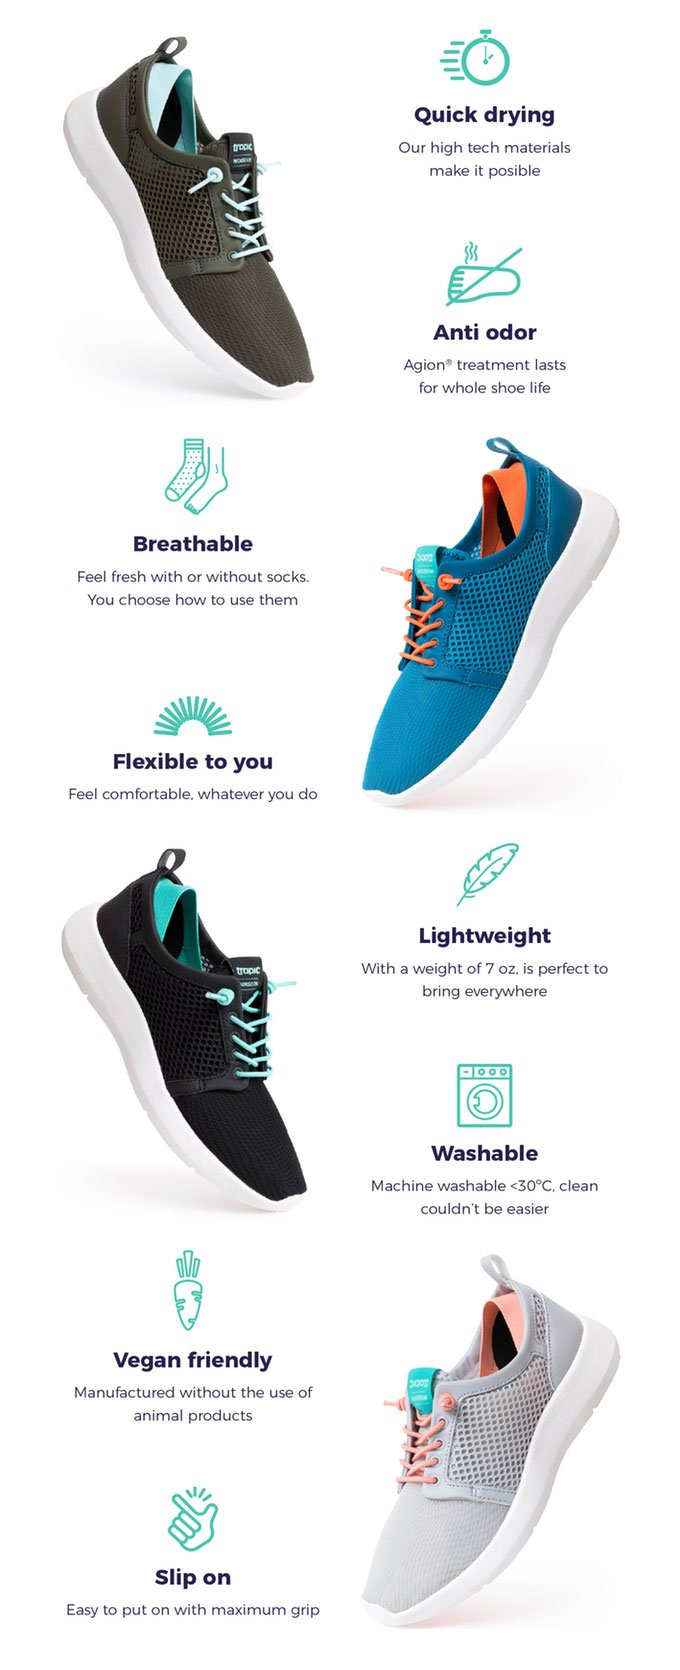 Tropic Quick Drying Shoes